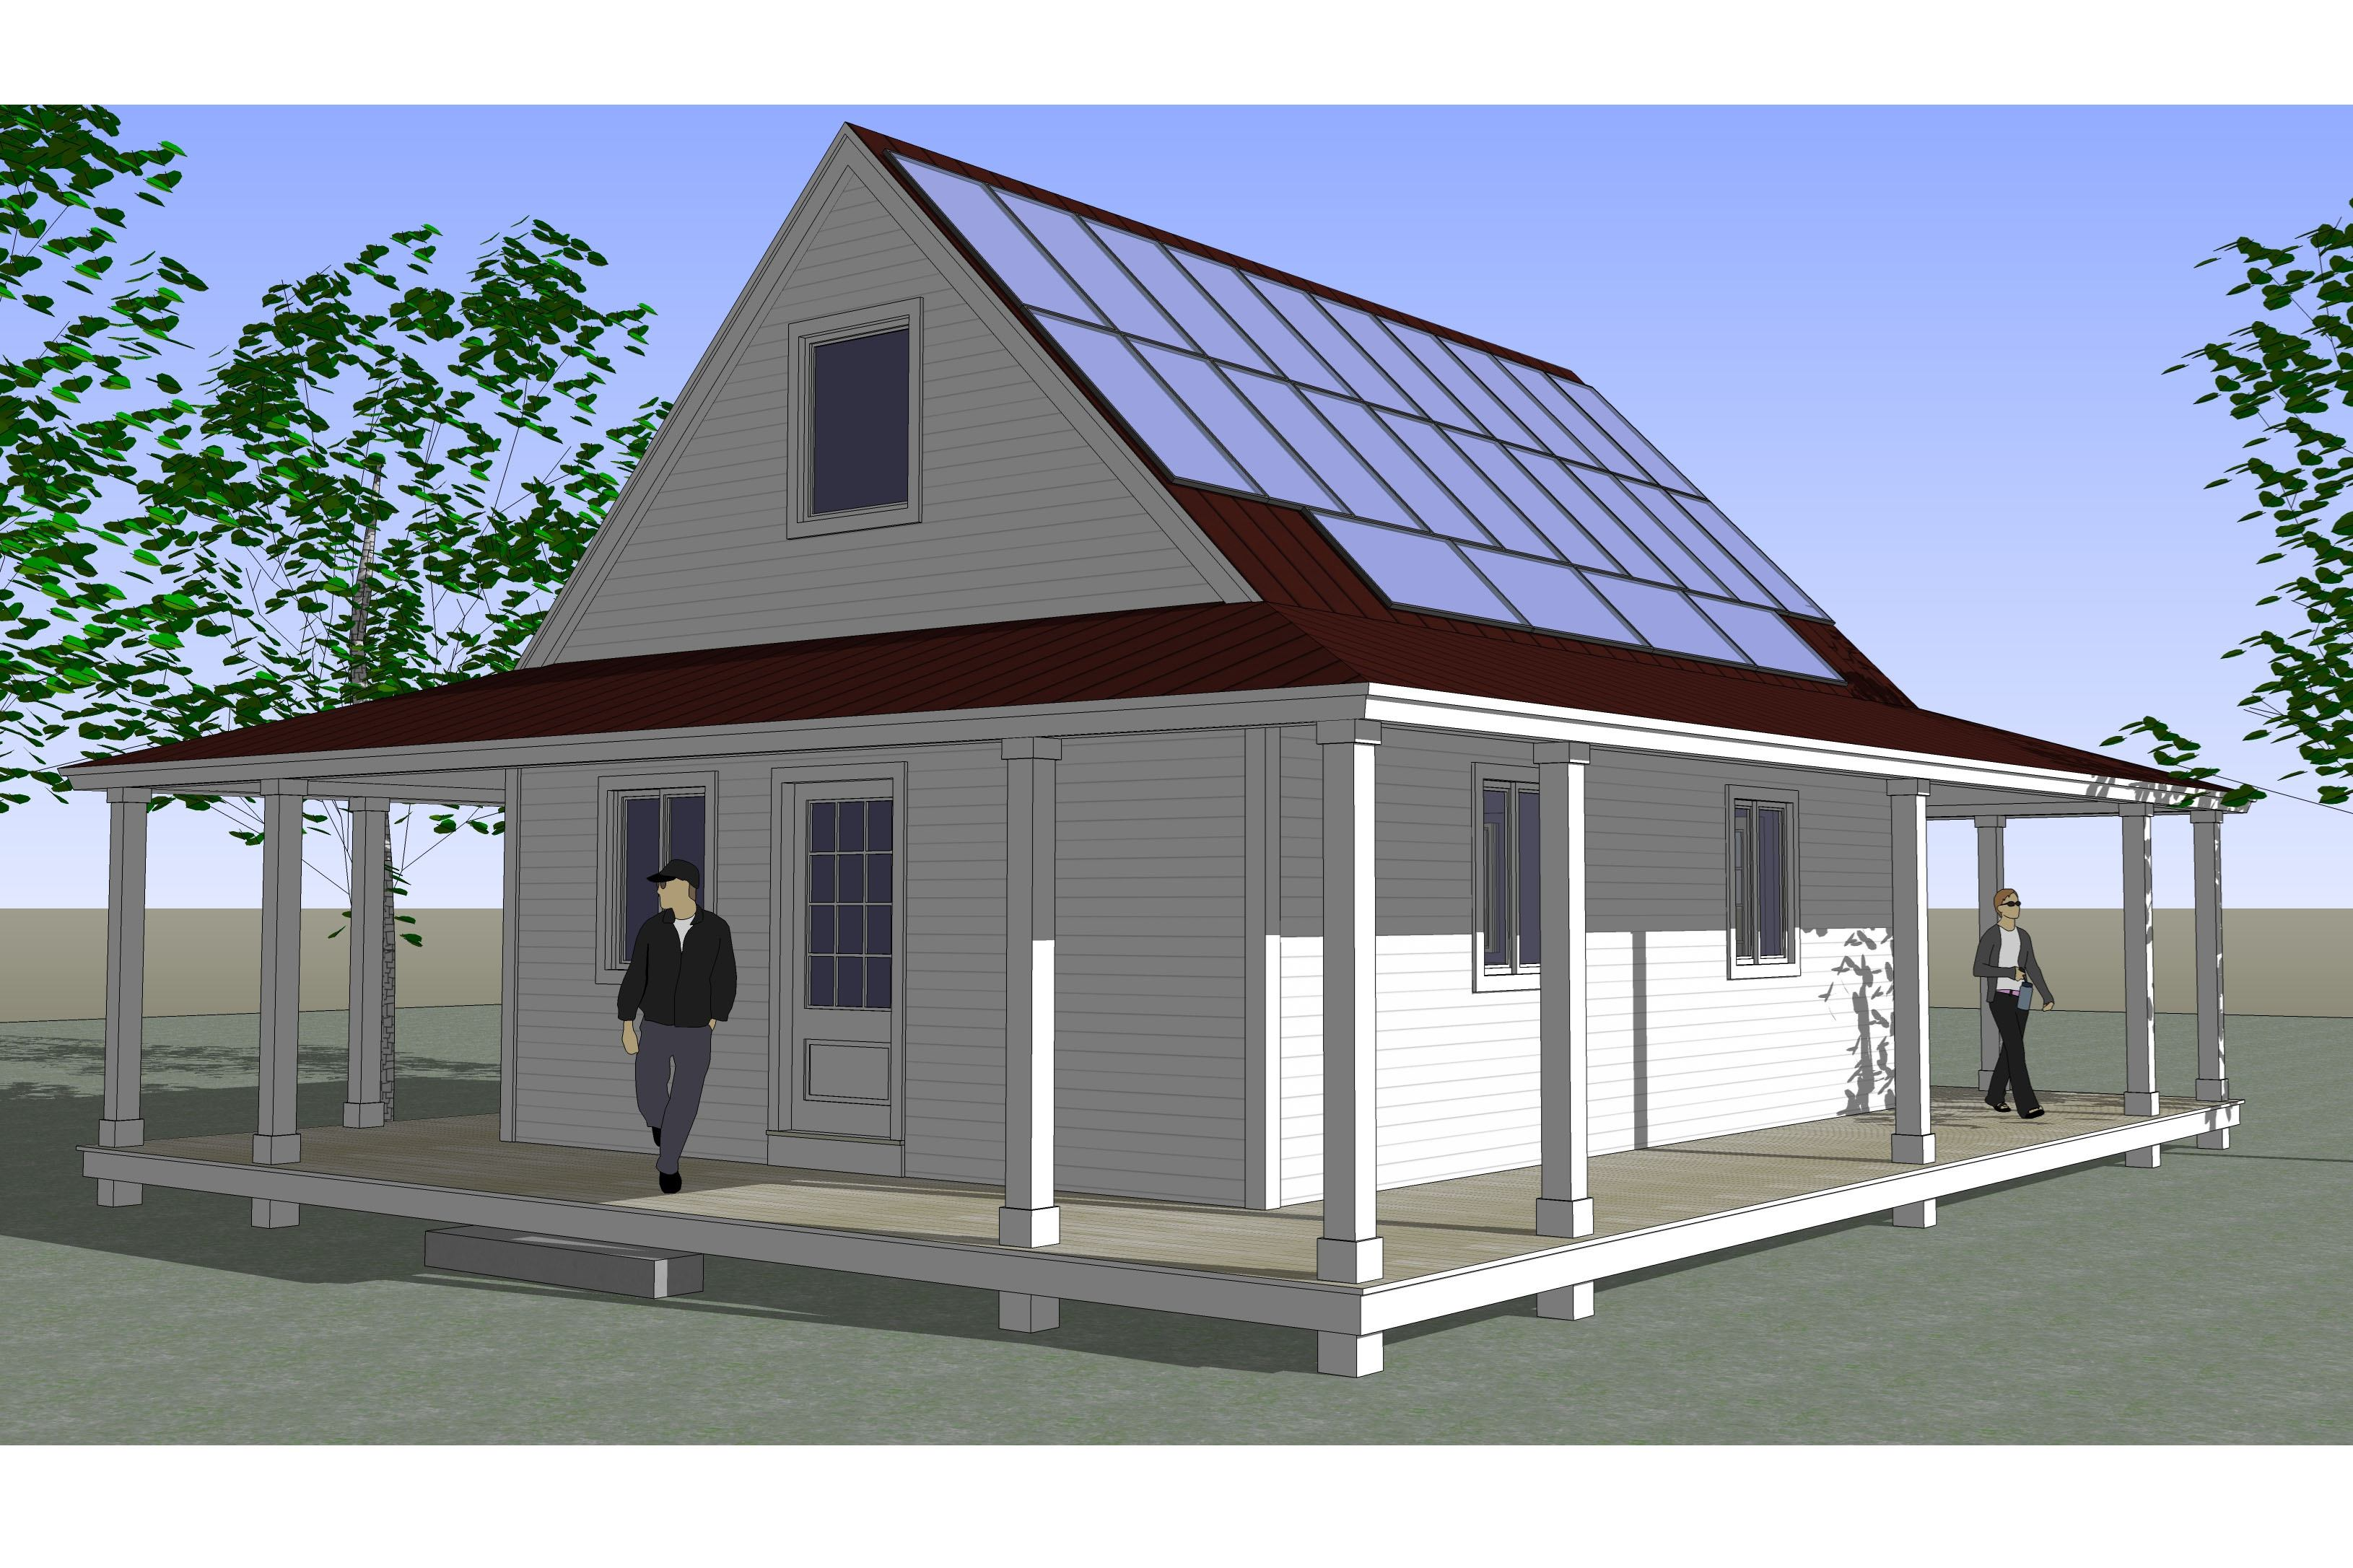 13 simple affordable energy efficient home plans ideas for Efficiency house